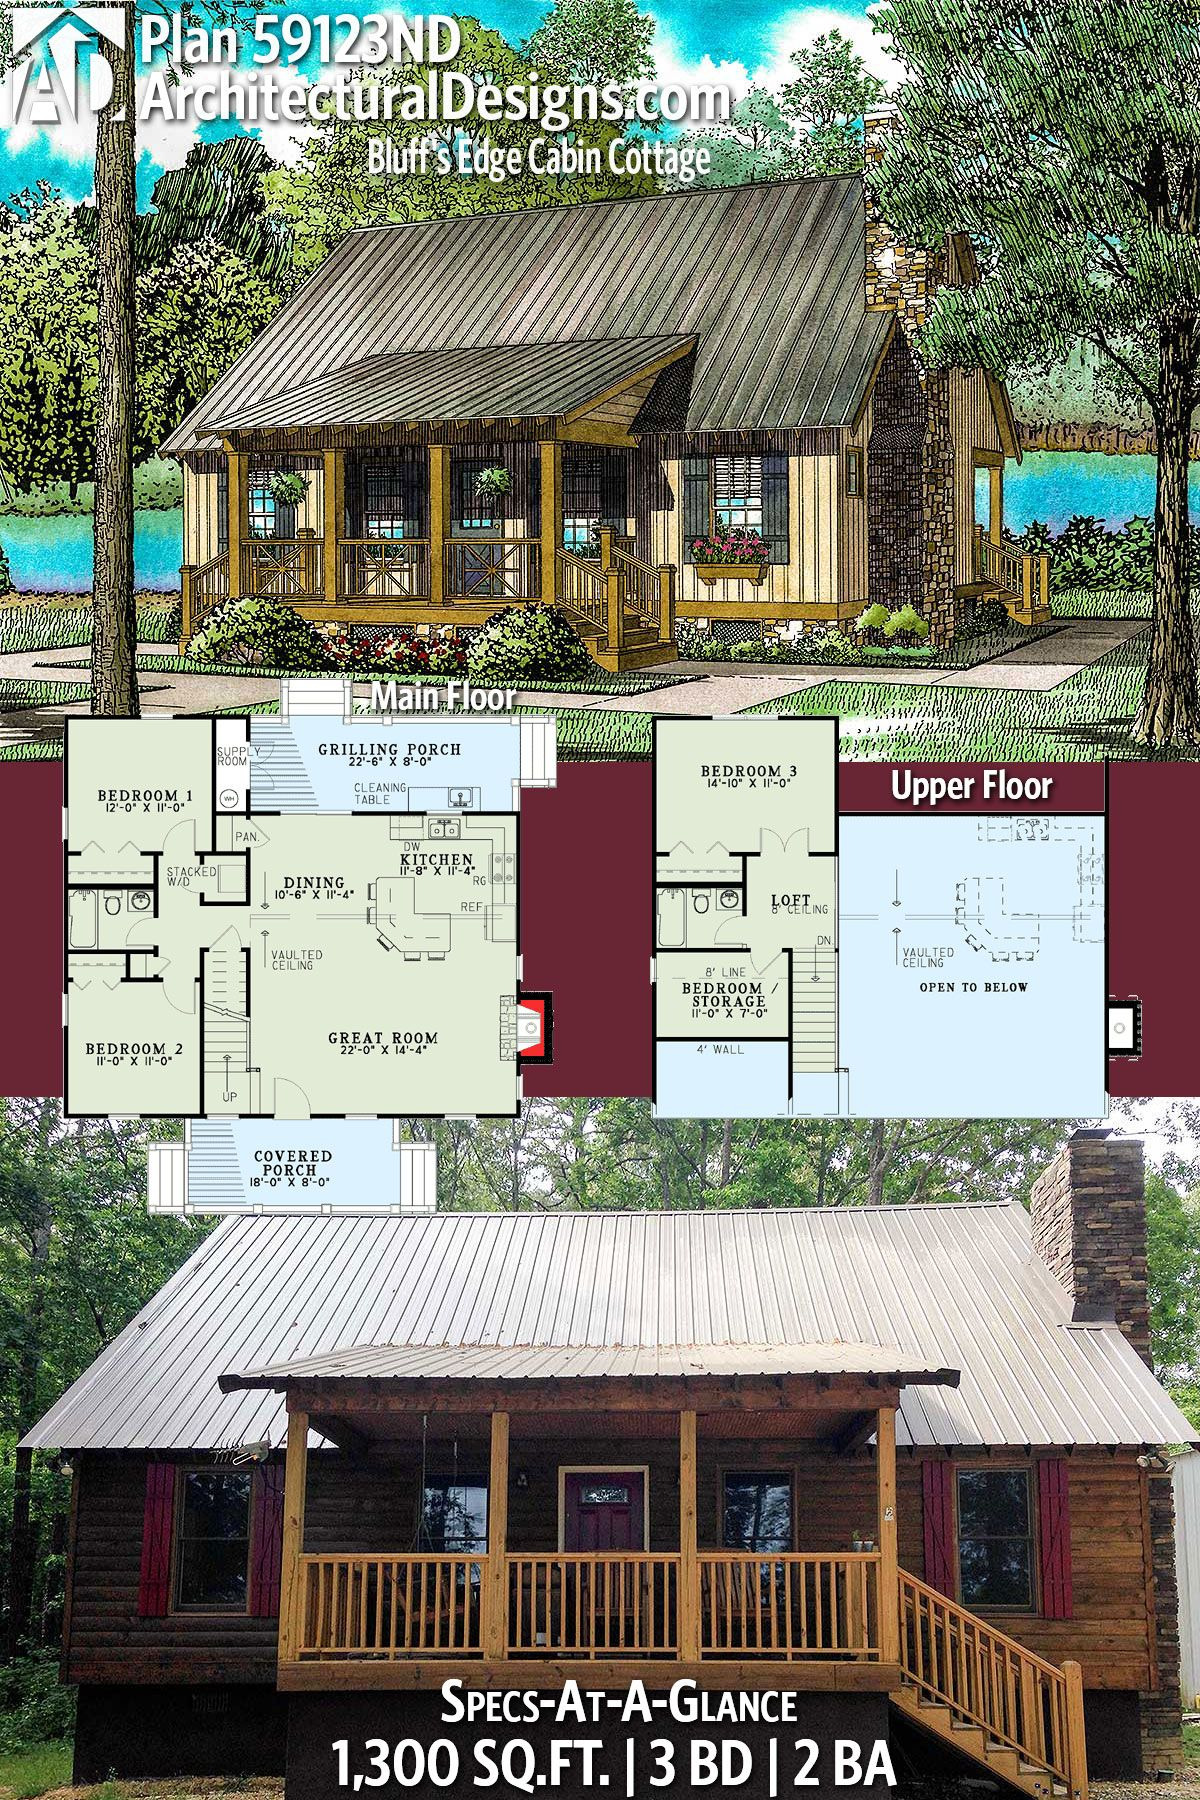 Rustic Cabin House Plans Unique Plan Nd Bluff S Edge Cabin Cottage In 2020